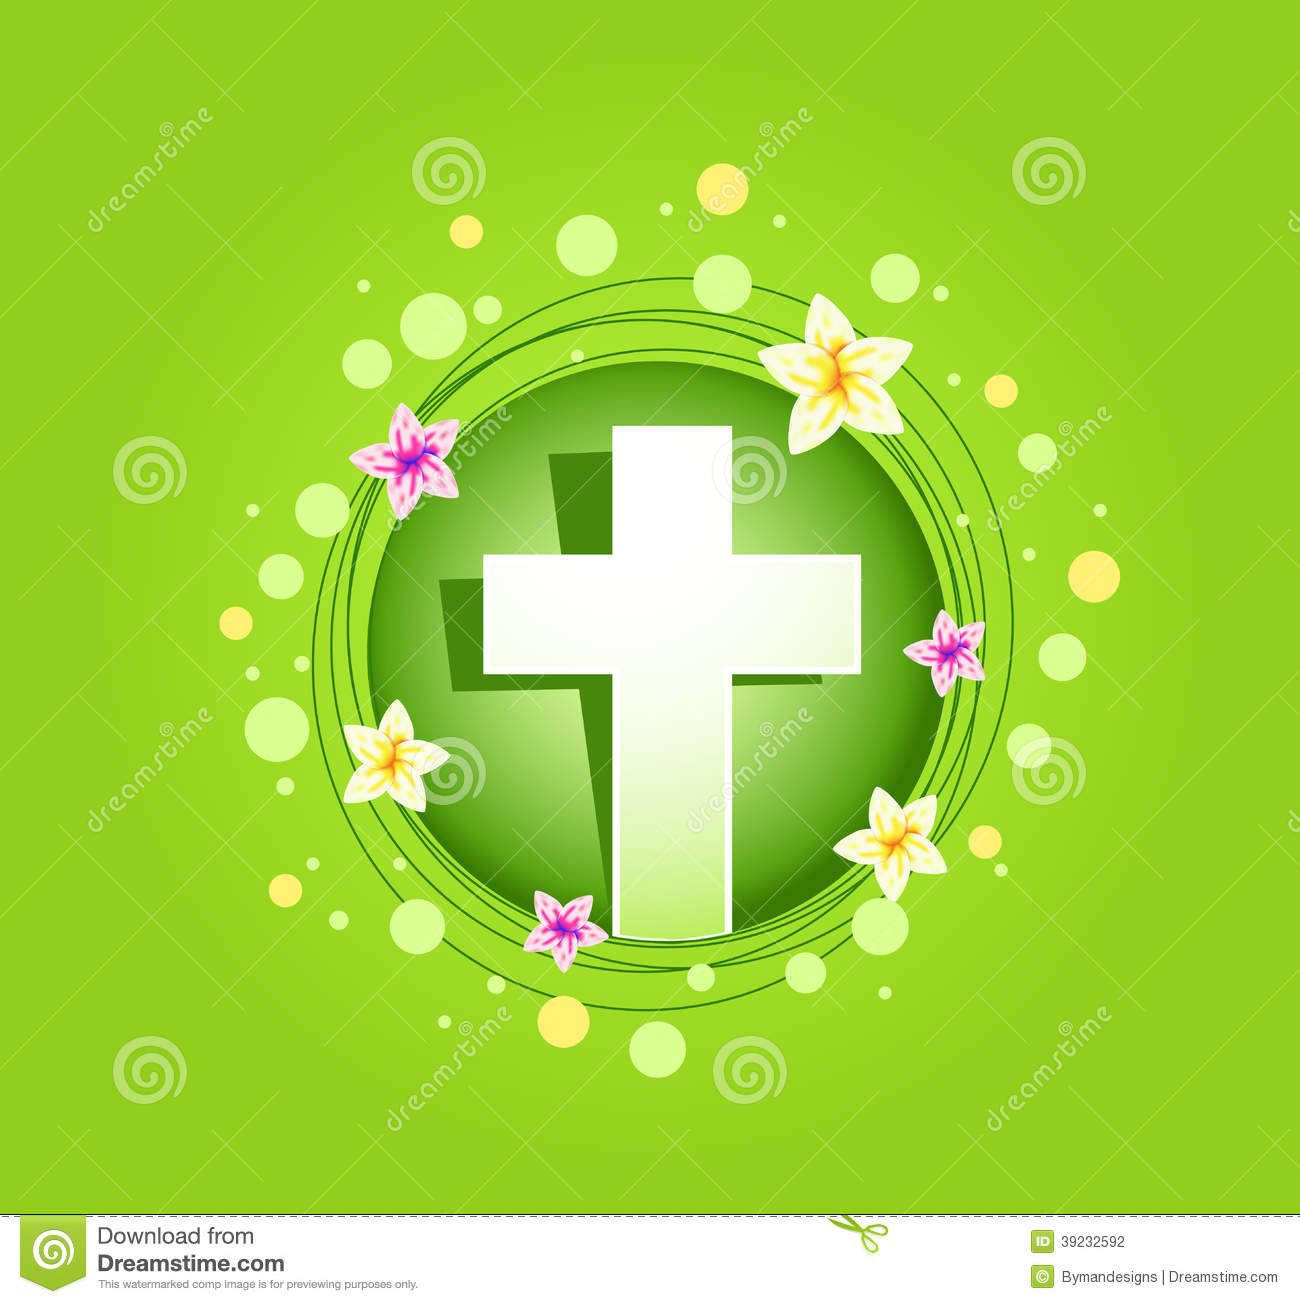 Easter Religious Cross Spring Card Stock Vector - Image: 39232592